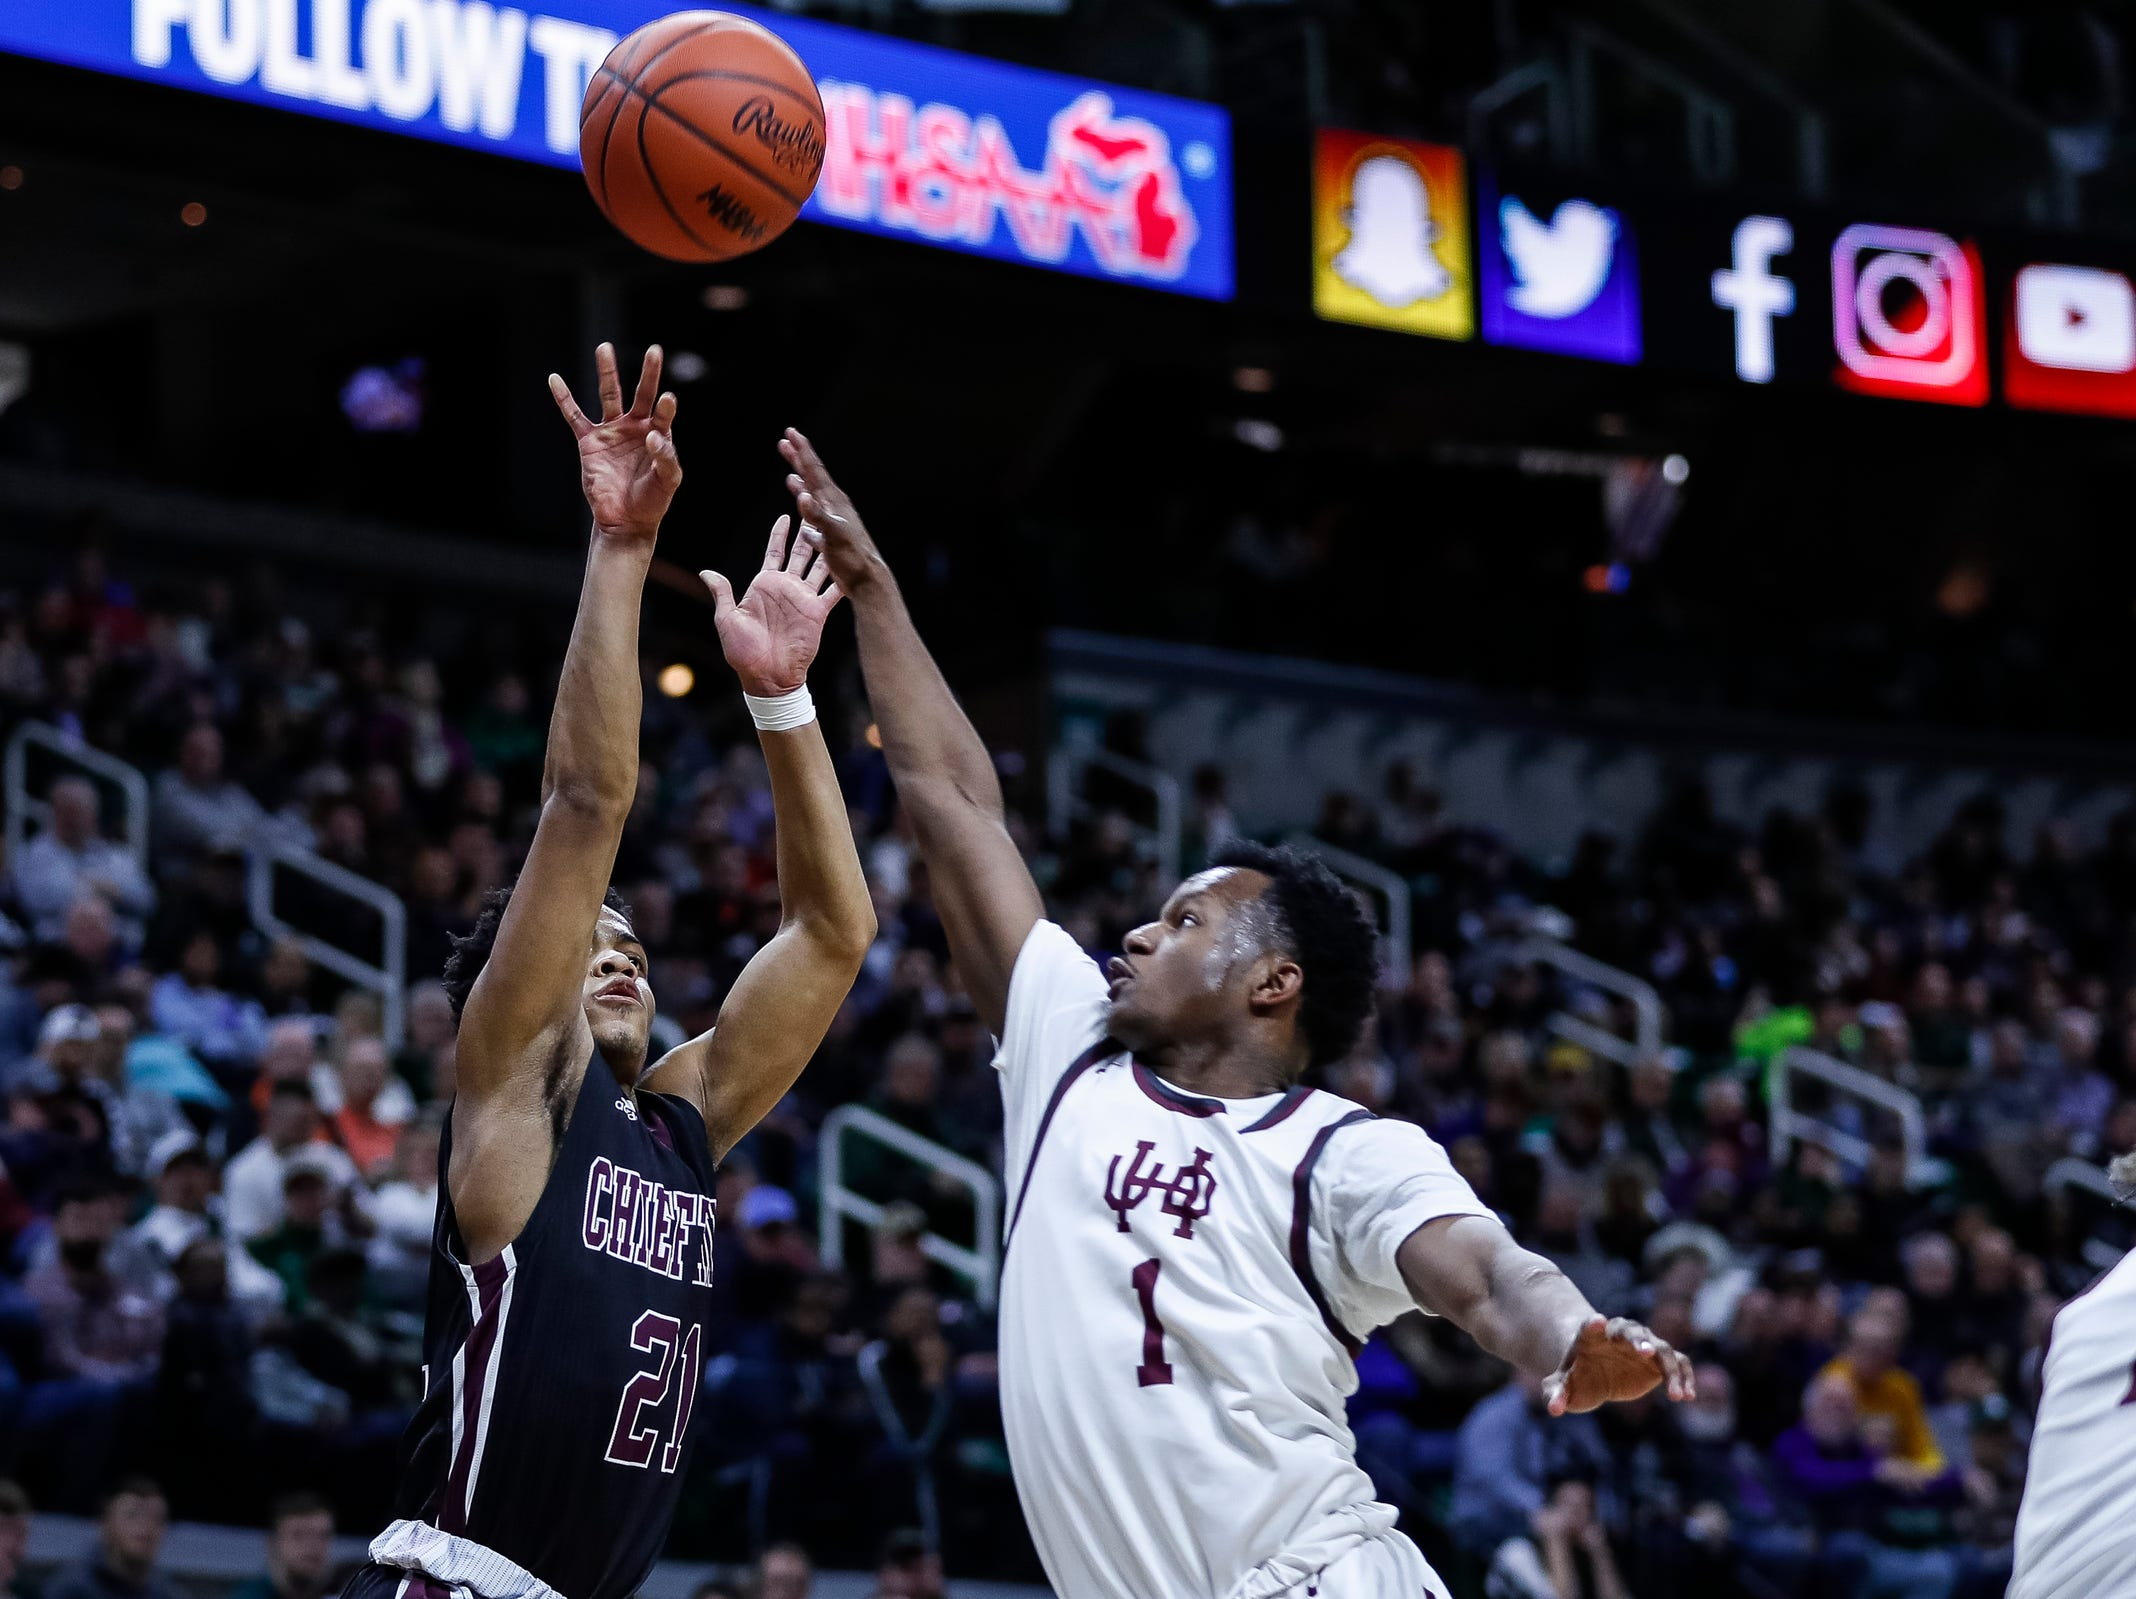 Okemos' Noah Pruitt (21) attempts for a 3-point basket against U-D Jesuit's Julian Dozier (1) during the first half of MHSAA Division 1 semifinal at the Breslin Center in East Lansing, Friday, March 15, 2019.